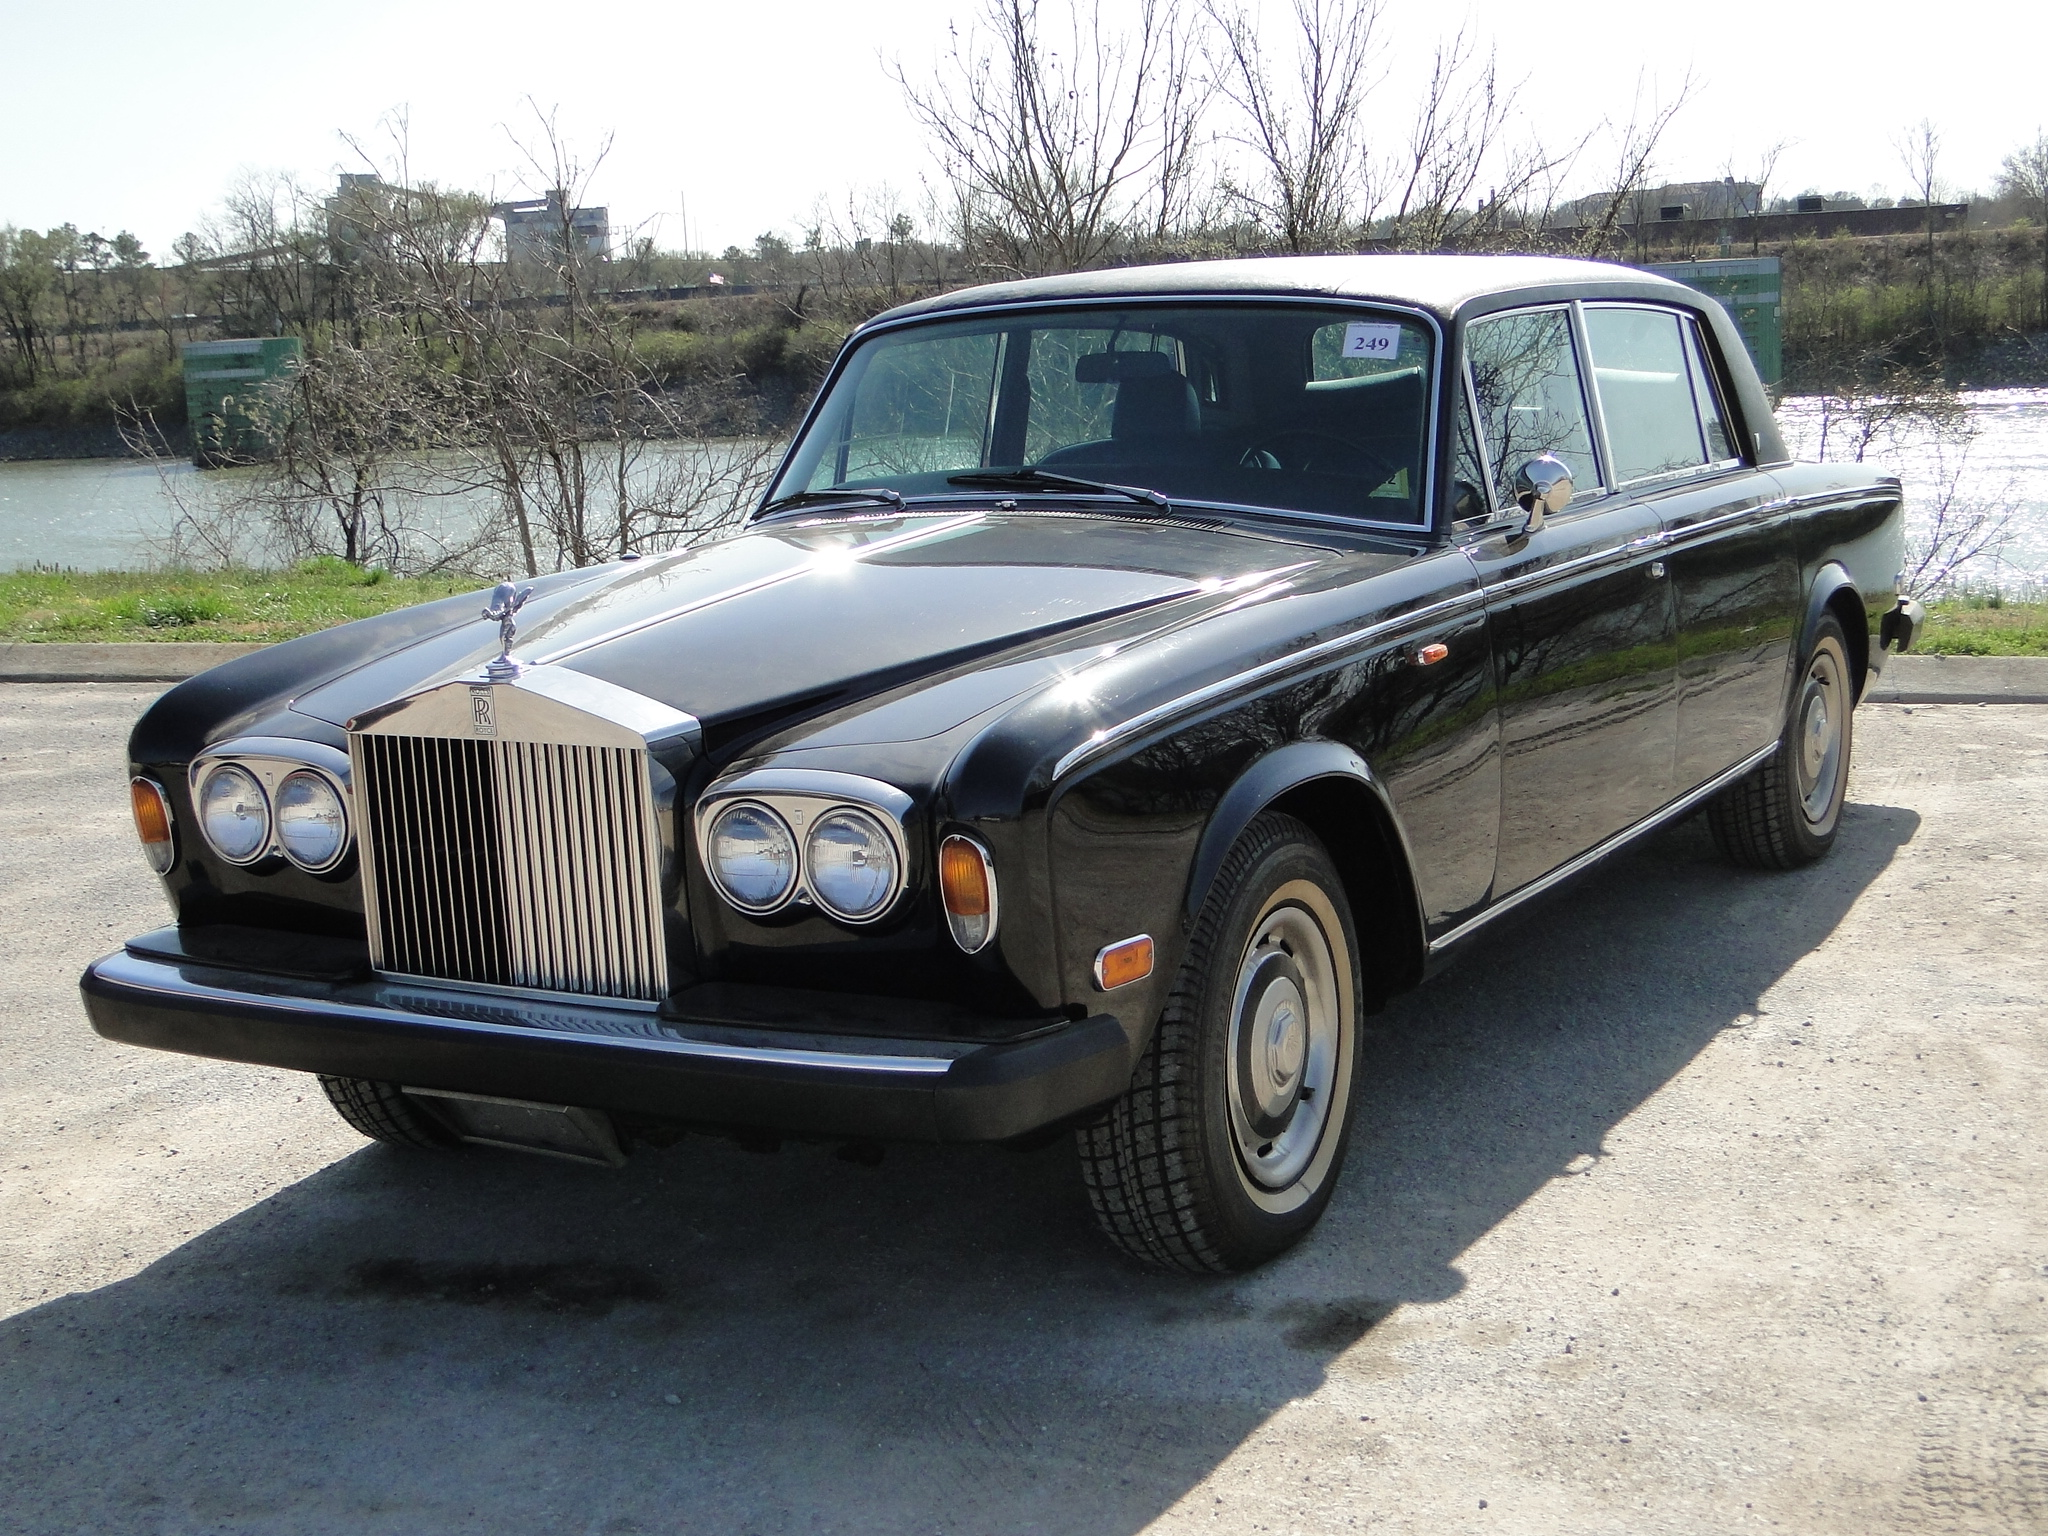 1976 Rolls royce Silver Shadow #2